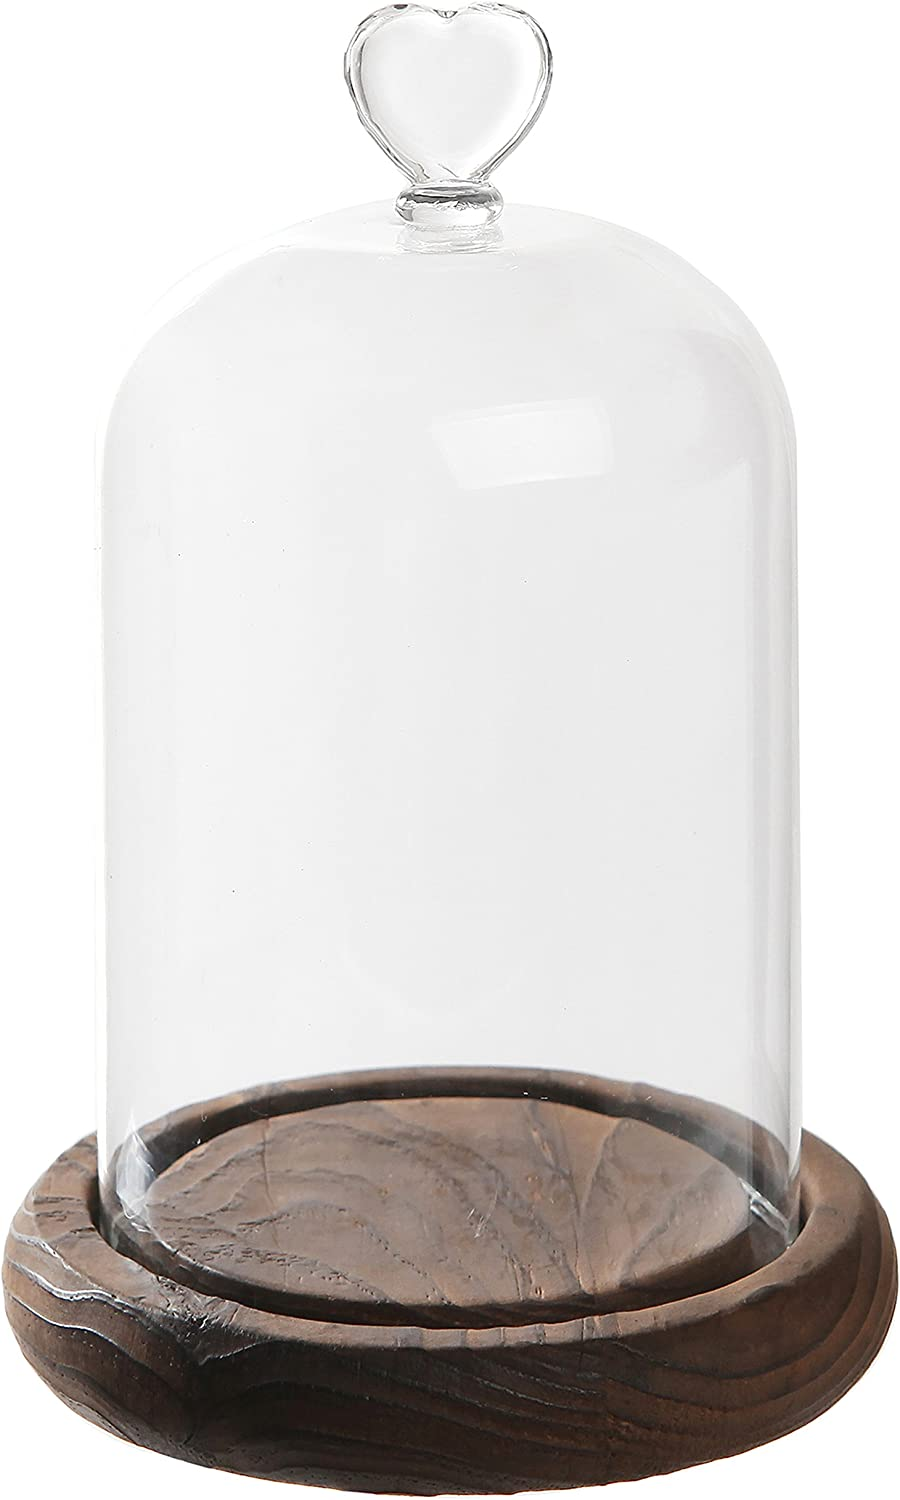 7 inch Mini Clear Glass & Wood Cloche Bell Jar Centerpiece/Tabletop Display Case w/Heart Handle